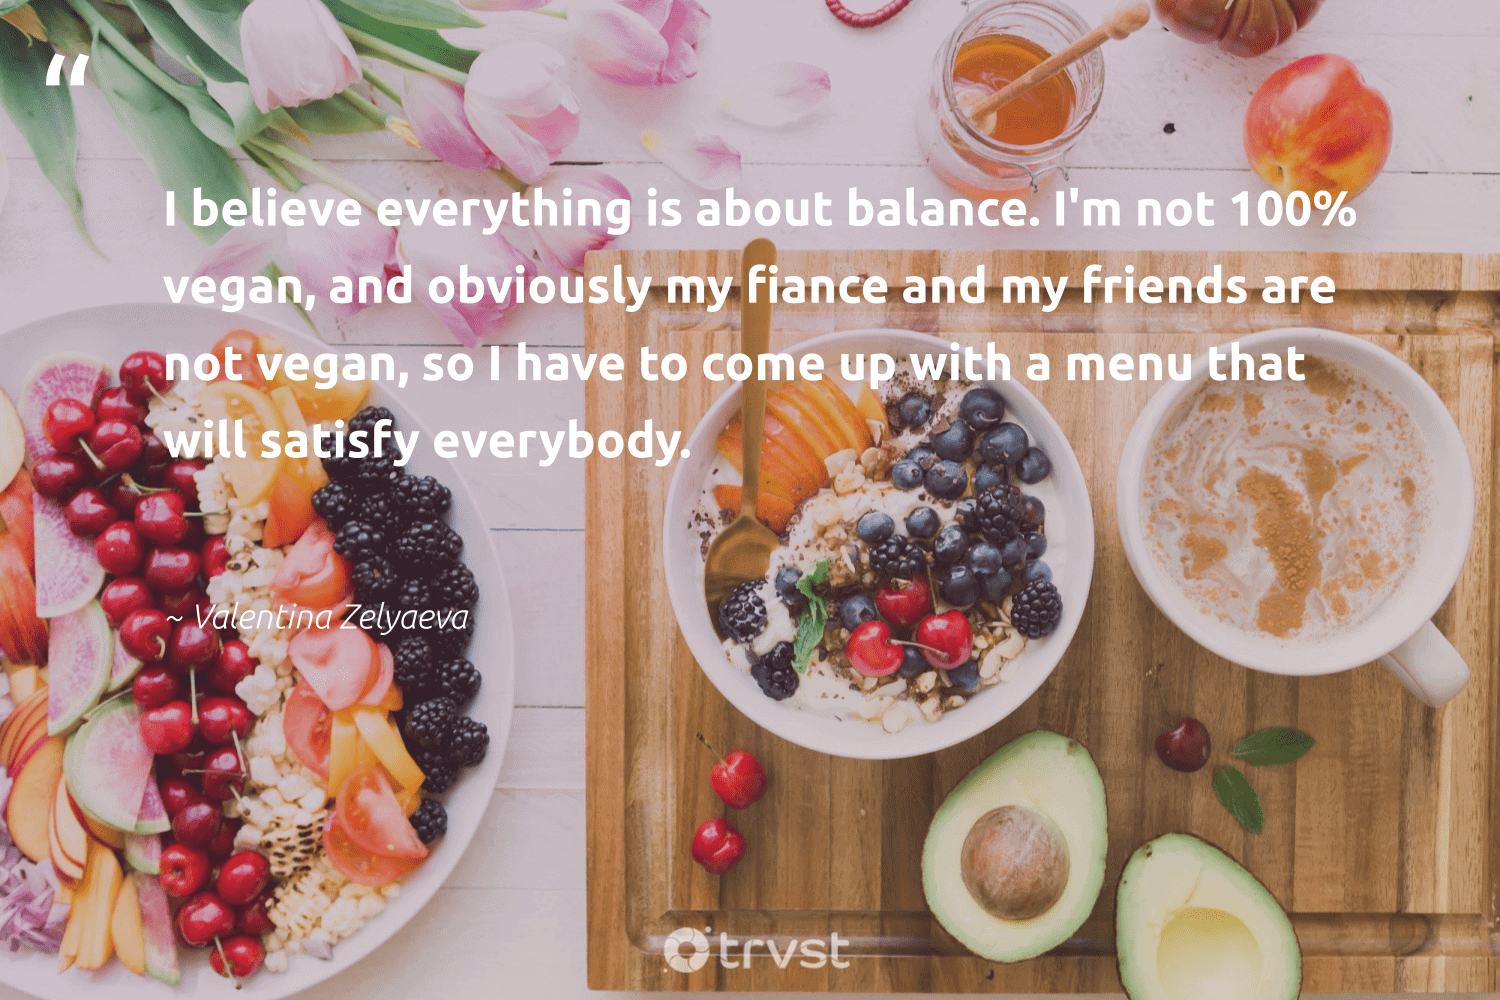 """""""I believe everything is about balance. I'm not 100% vegan, and obviously my fiance and my friends are not vegan, so I have to come up with a menu that will satisfy everybody.""""  - Valentina Zelyaeva #trvst #quotes #balance #vegan #healthyfood #green #mindset #dogood #nutrition #greenliving #changemakers #impact"""